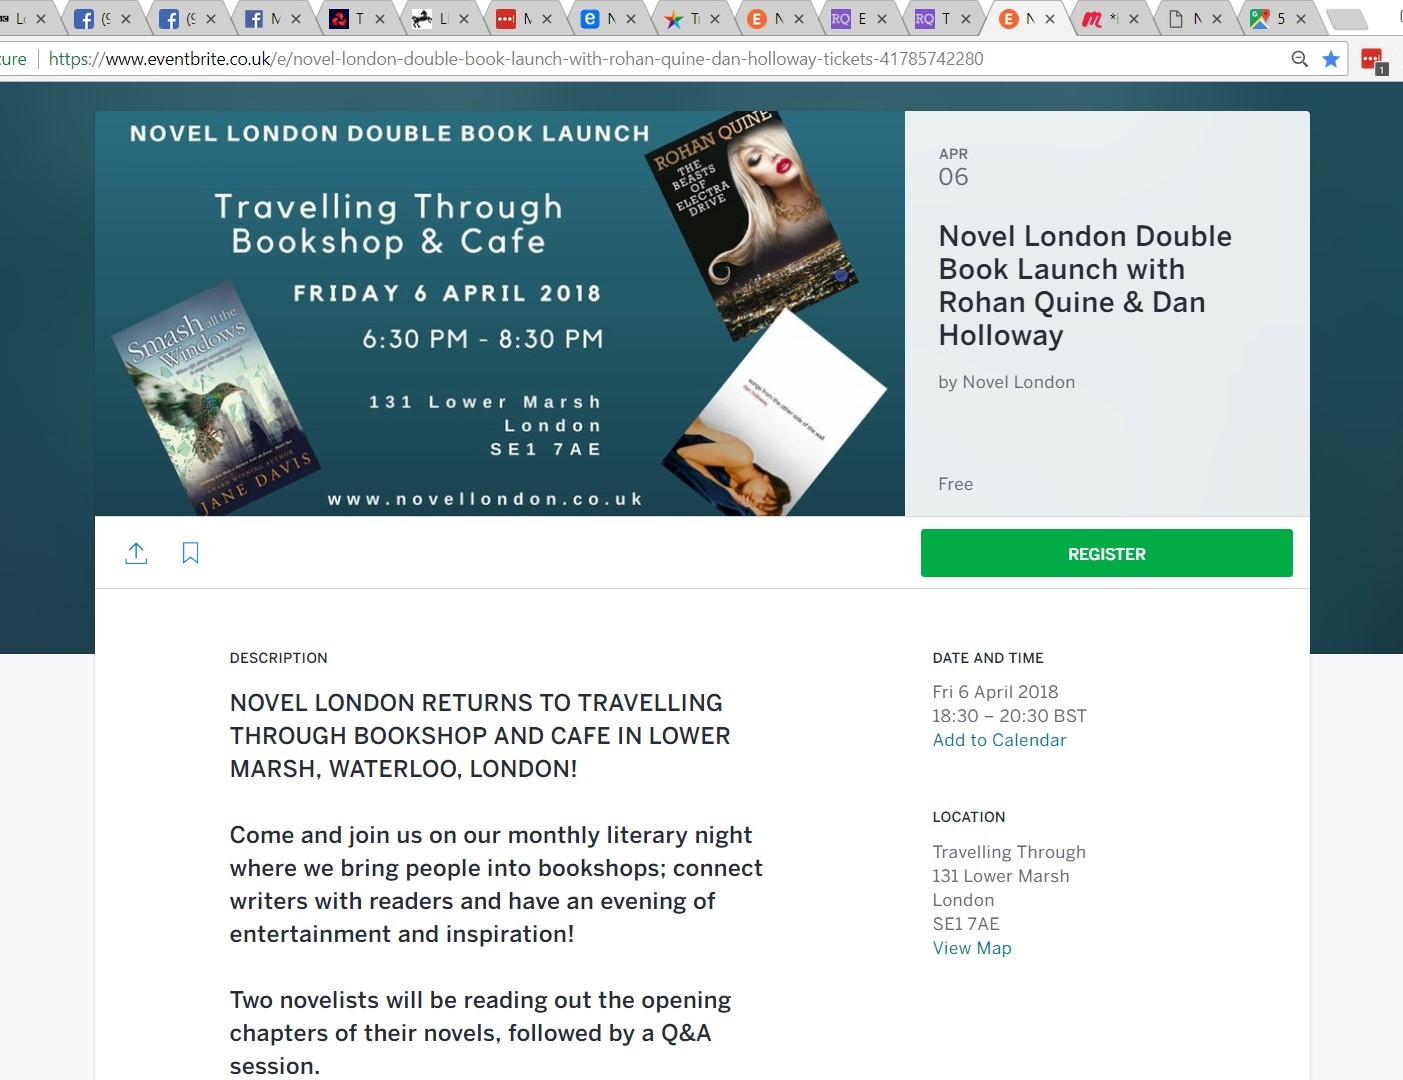 Eventbrite invitation to Rohan Quine's and Dan Holloway's 06-04-18 launch at Travelling Through - 1